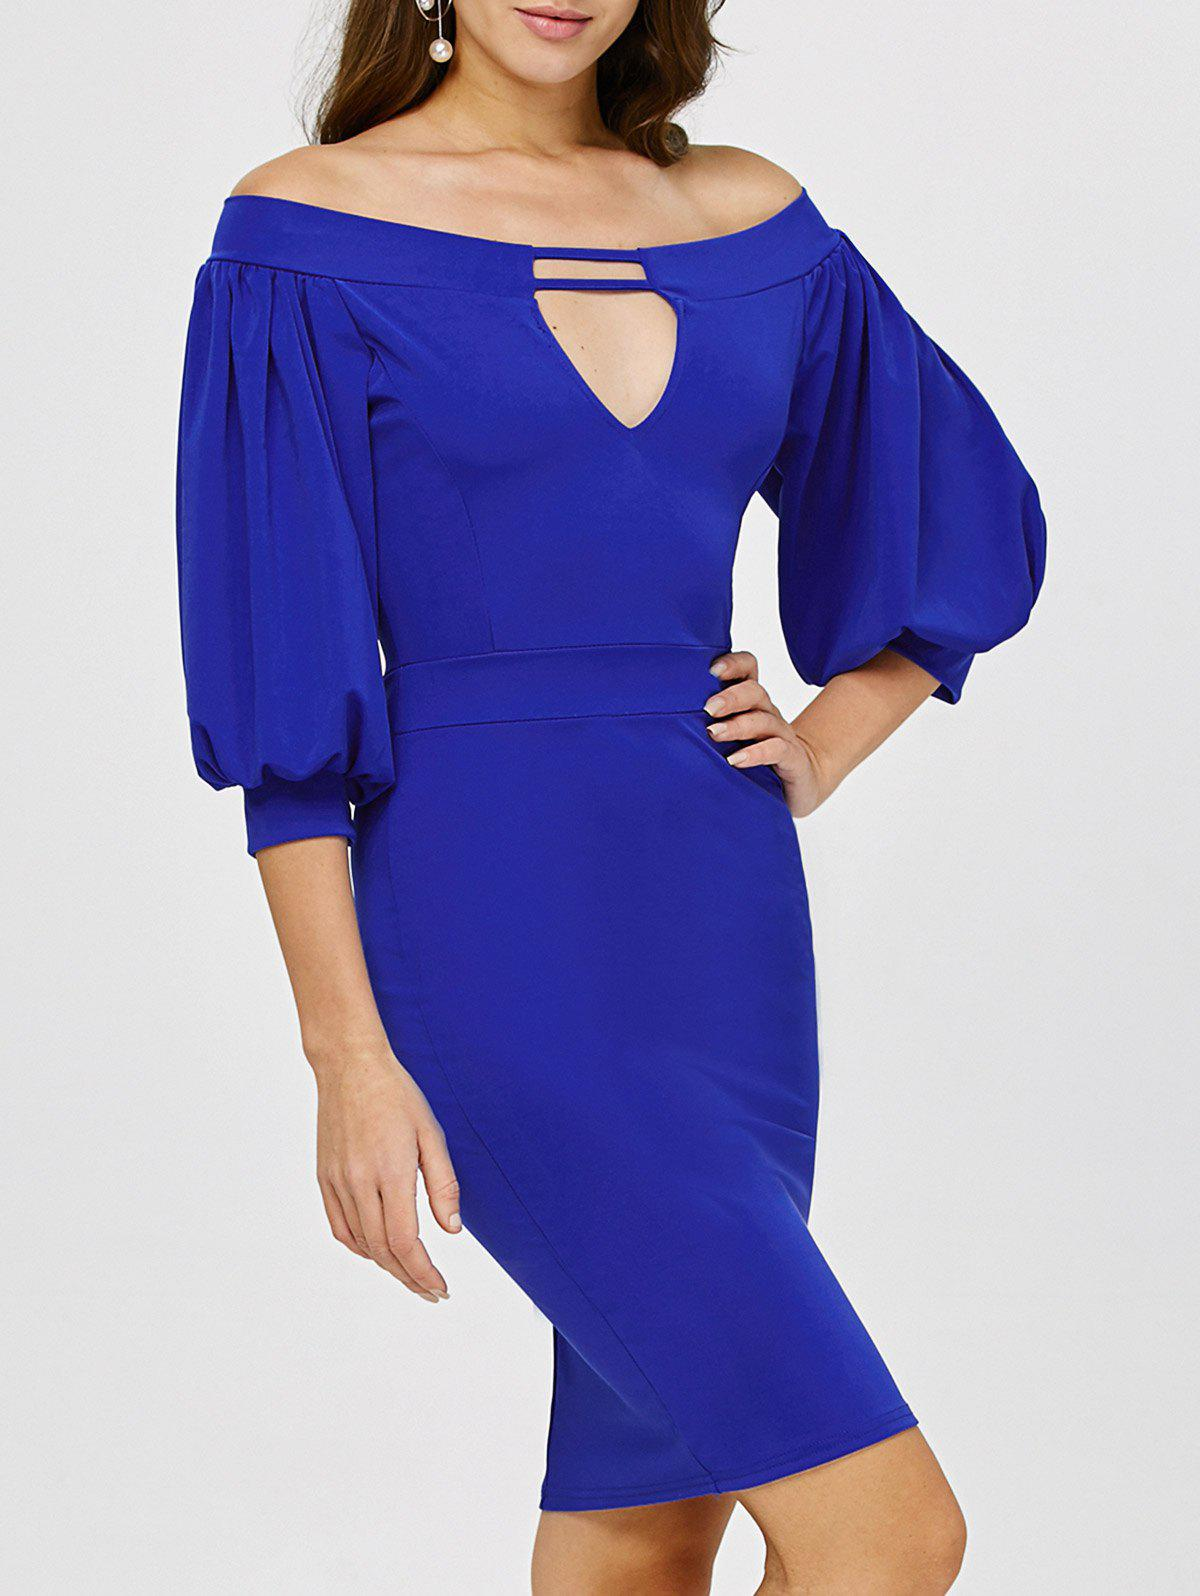 Off The Shoulder Puff Sleeves Bodycon DressWomen<br><br><br>Size: S<br>Color: ROYAL